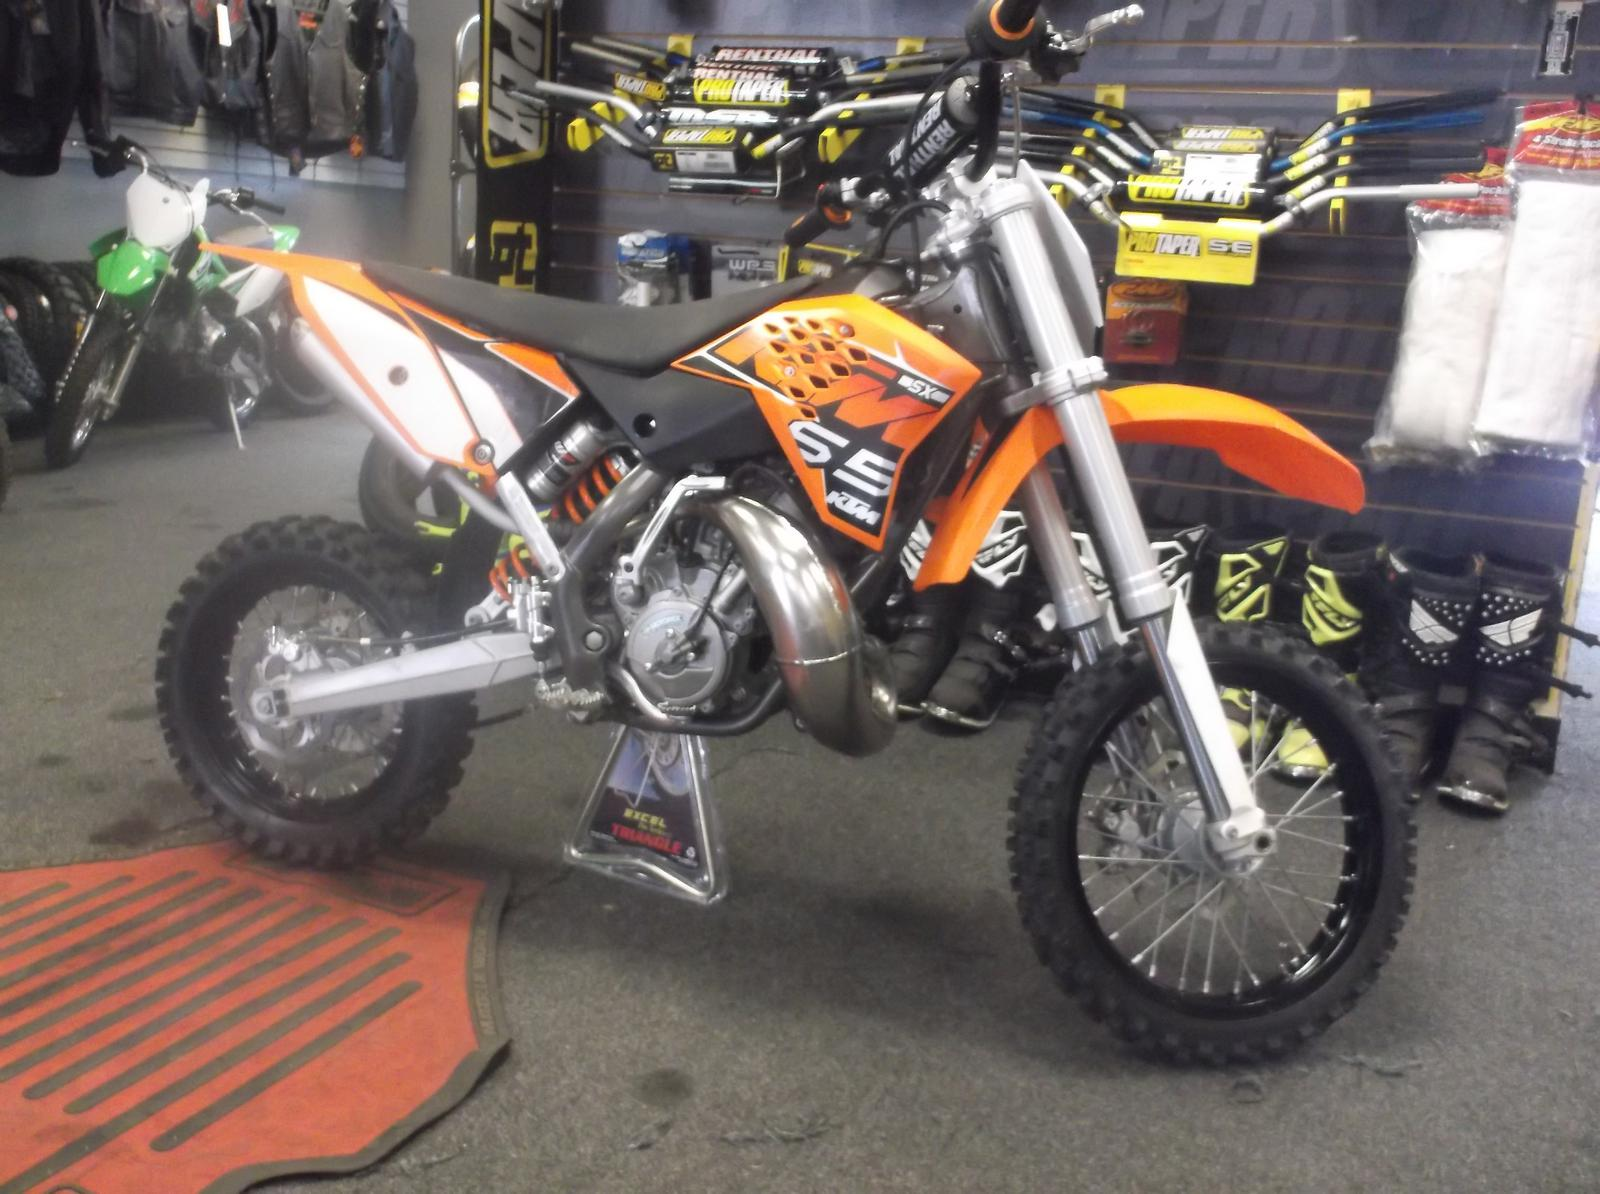 2016 ktm 65 for sale in thomaston, ct | roost powersports (860